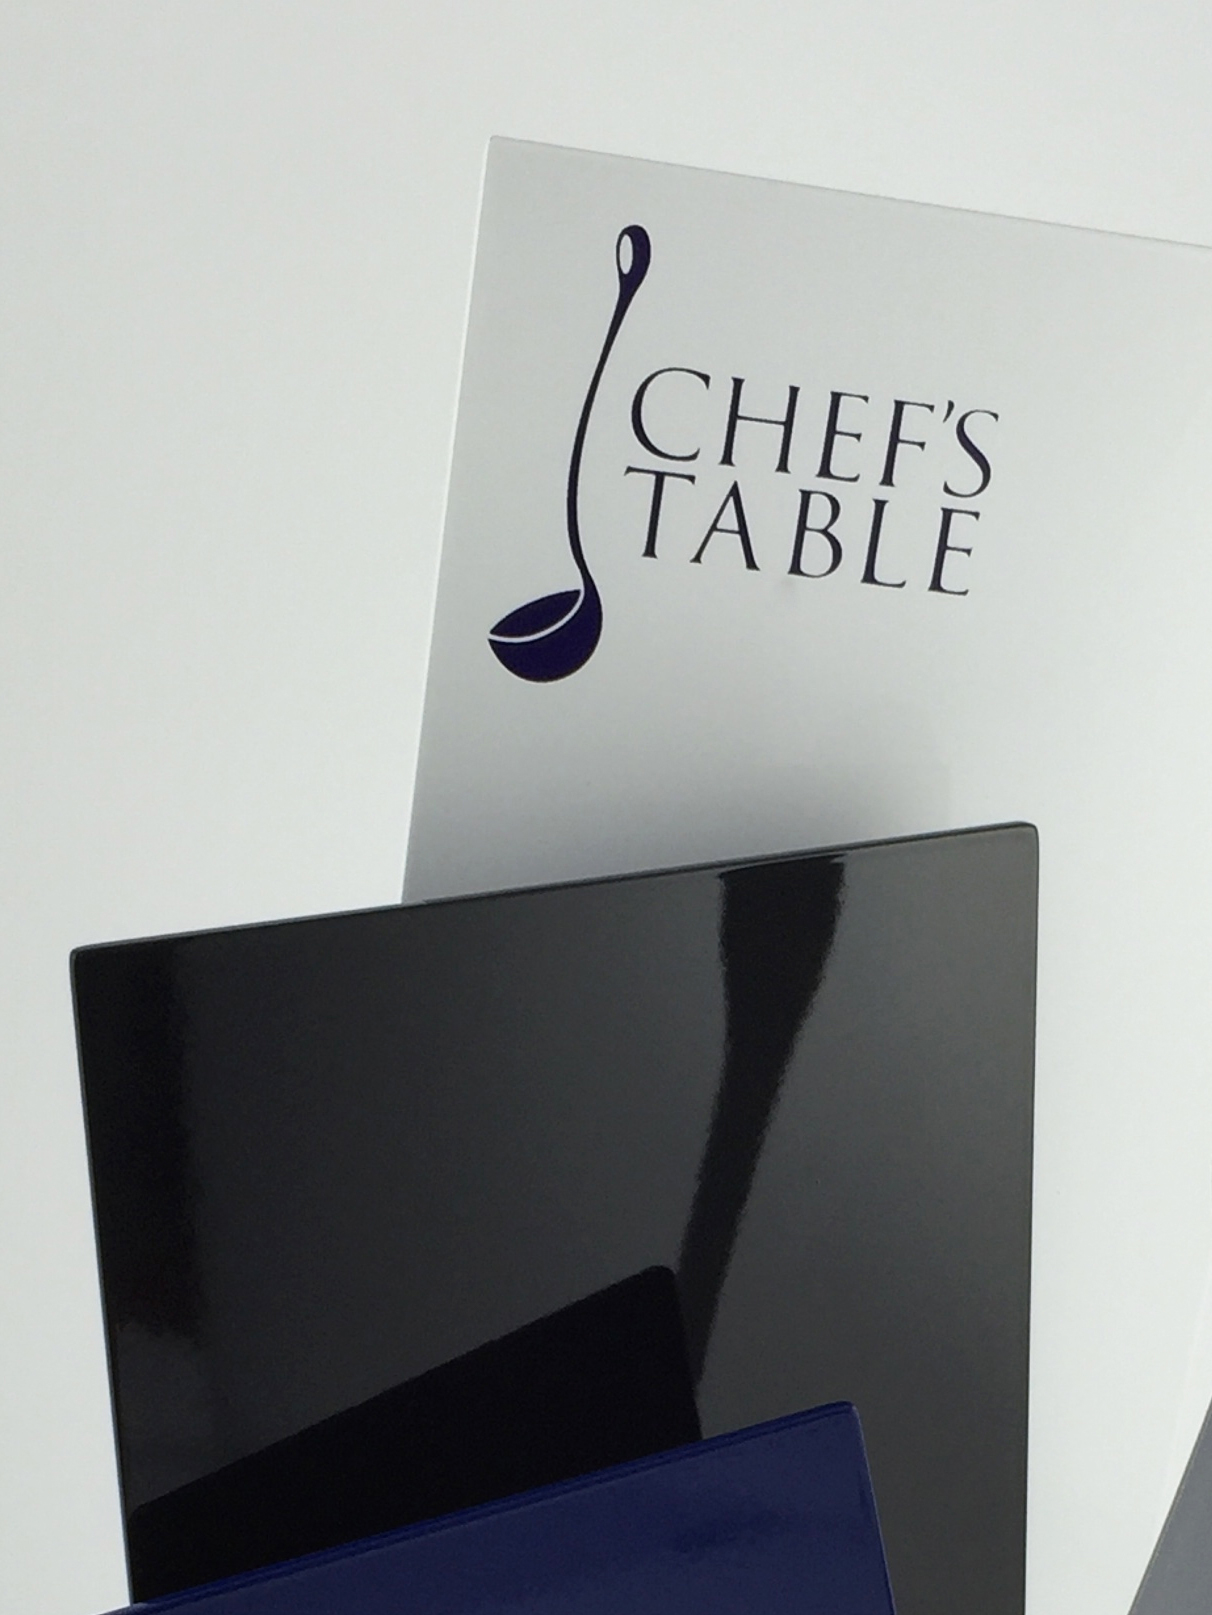 Chefs-table-aluminium-trohpy-award-01.jpg